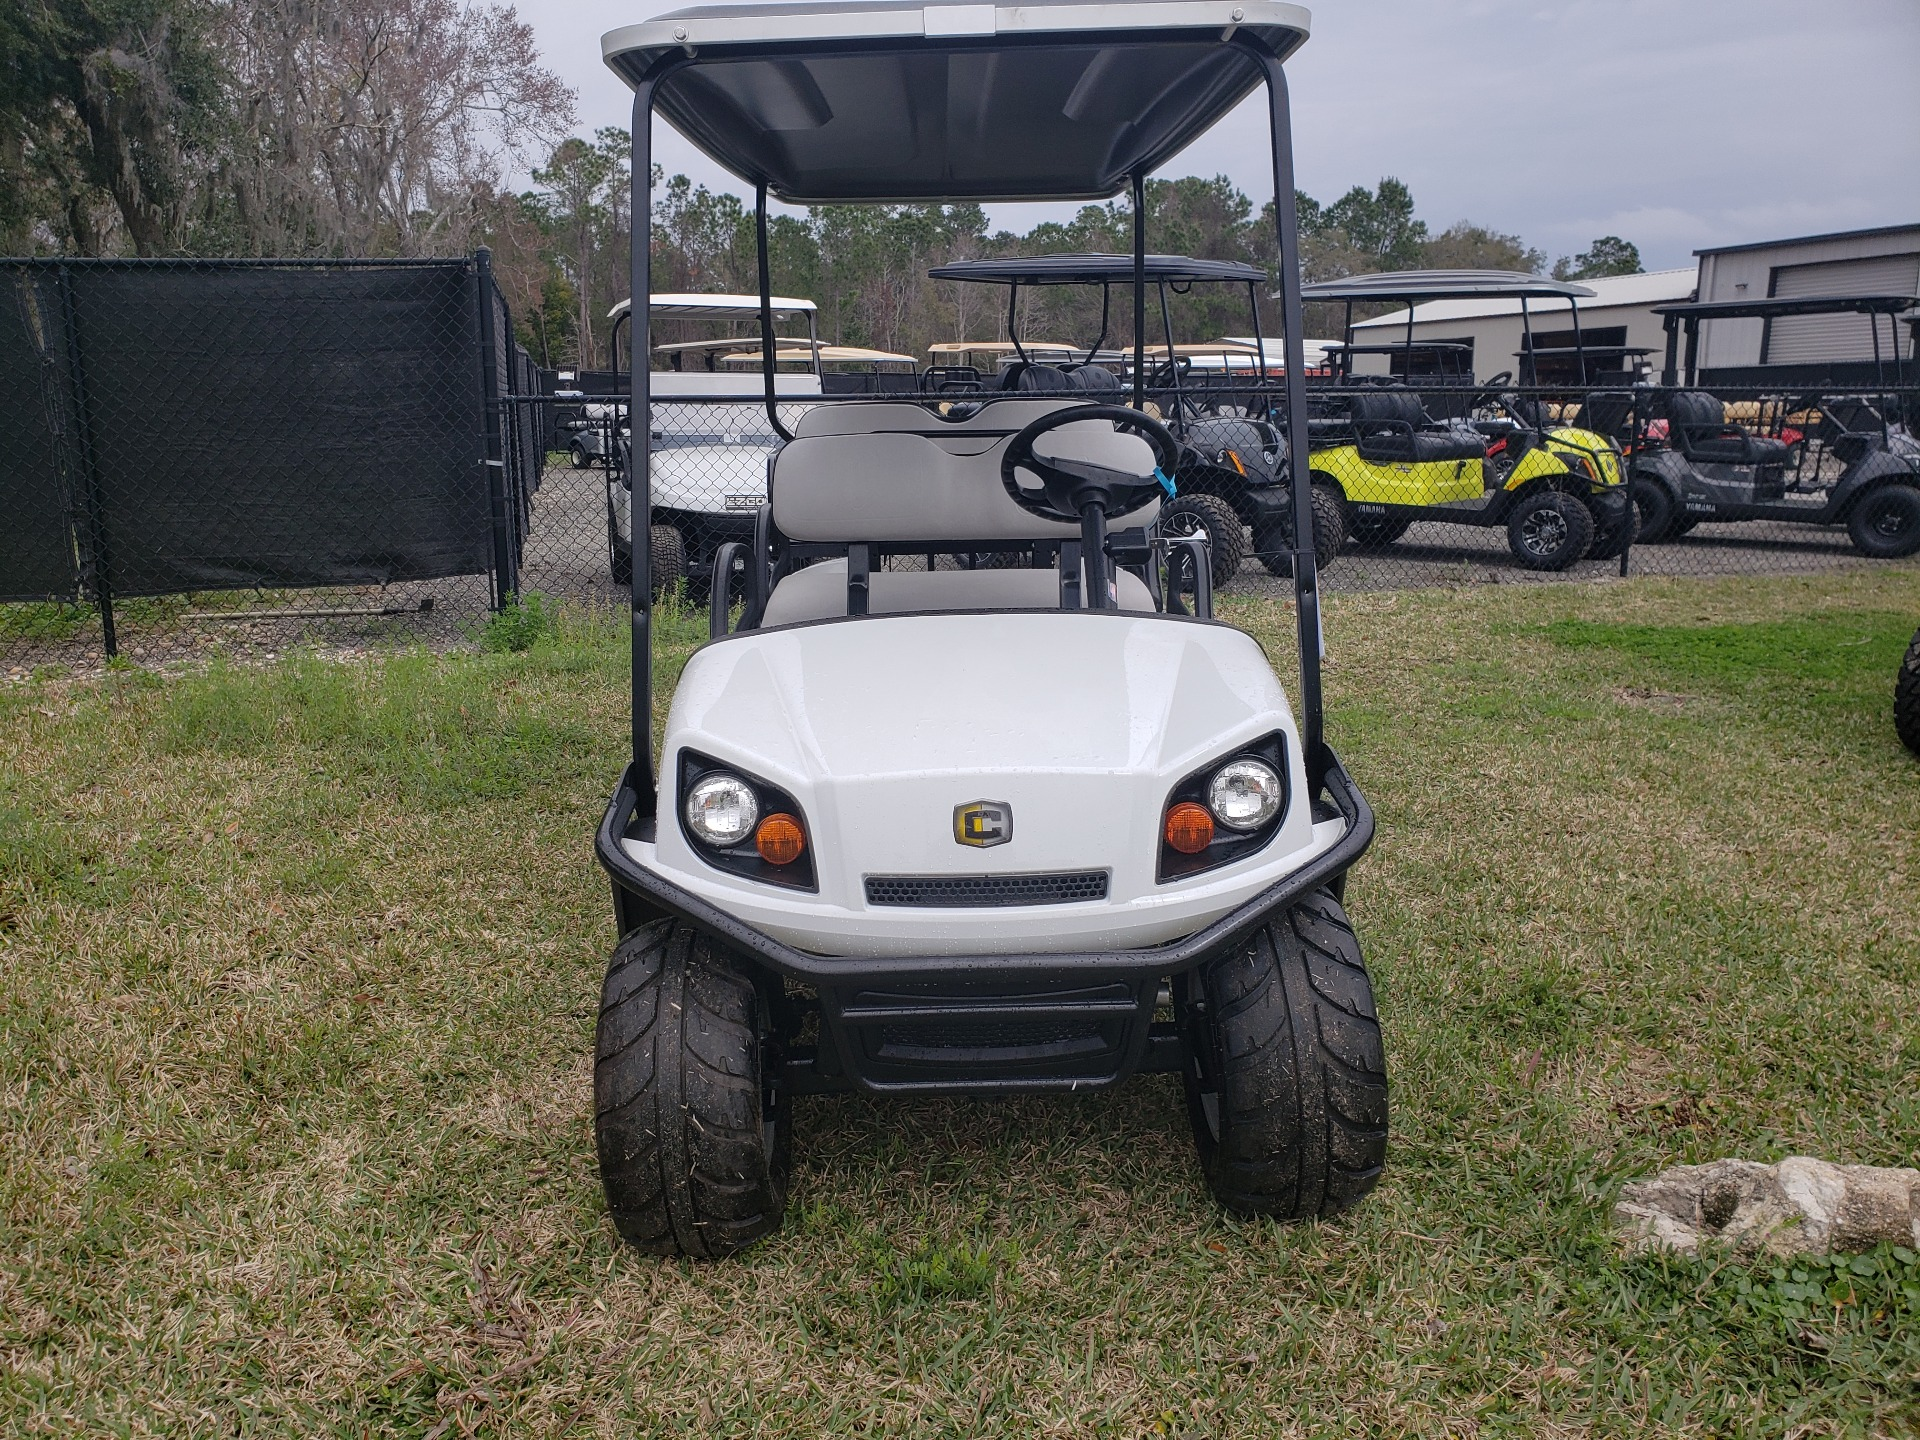 2021 Cushman Shuttle 6 EFI GAS in Fernandina Beach, Florida - Photo 2